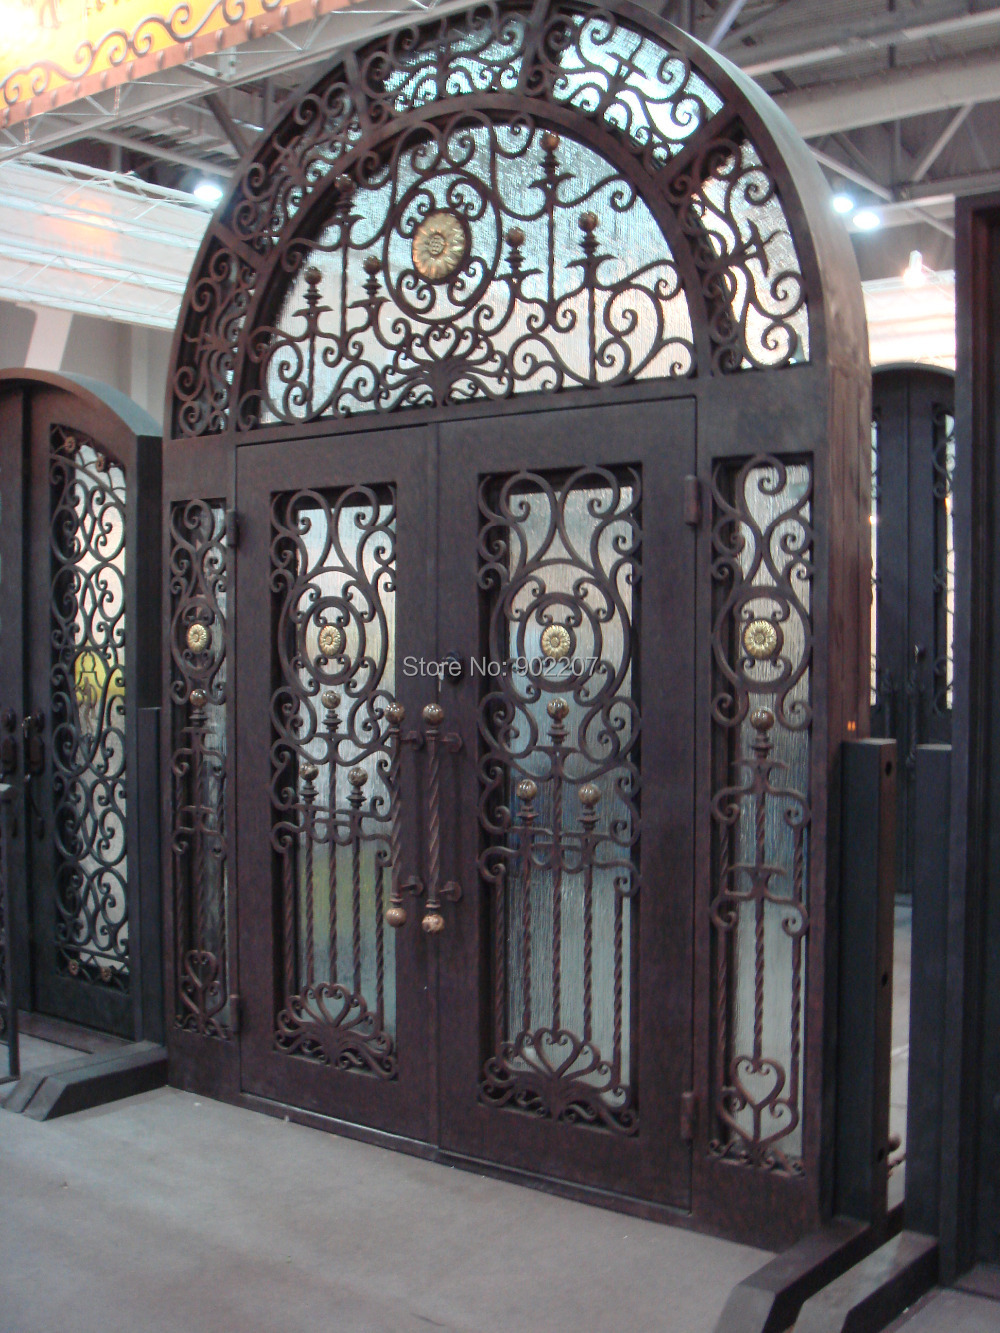 Custom design wrought iron door iron doorslarge wrought iron custom design wrought iron door iron doorslarge wrought iron entry door in doors from home improvement on aliexpress alibaba group rubansaba